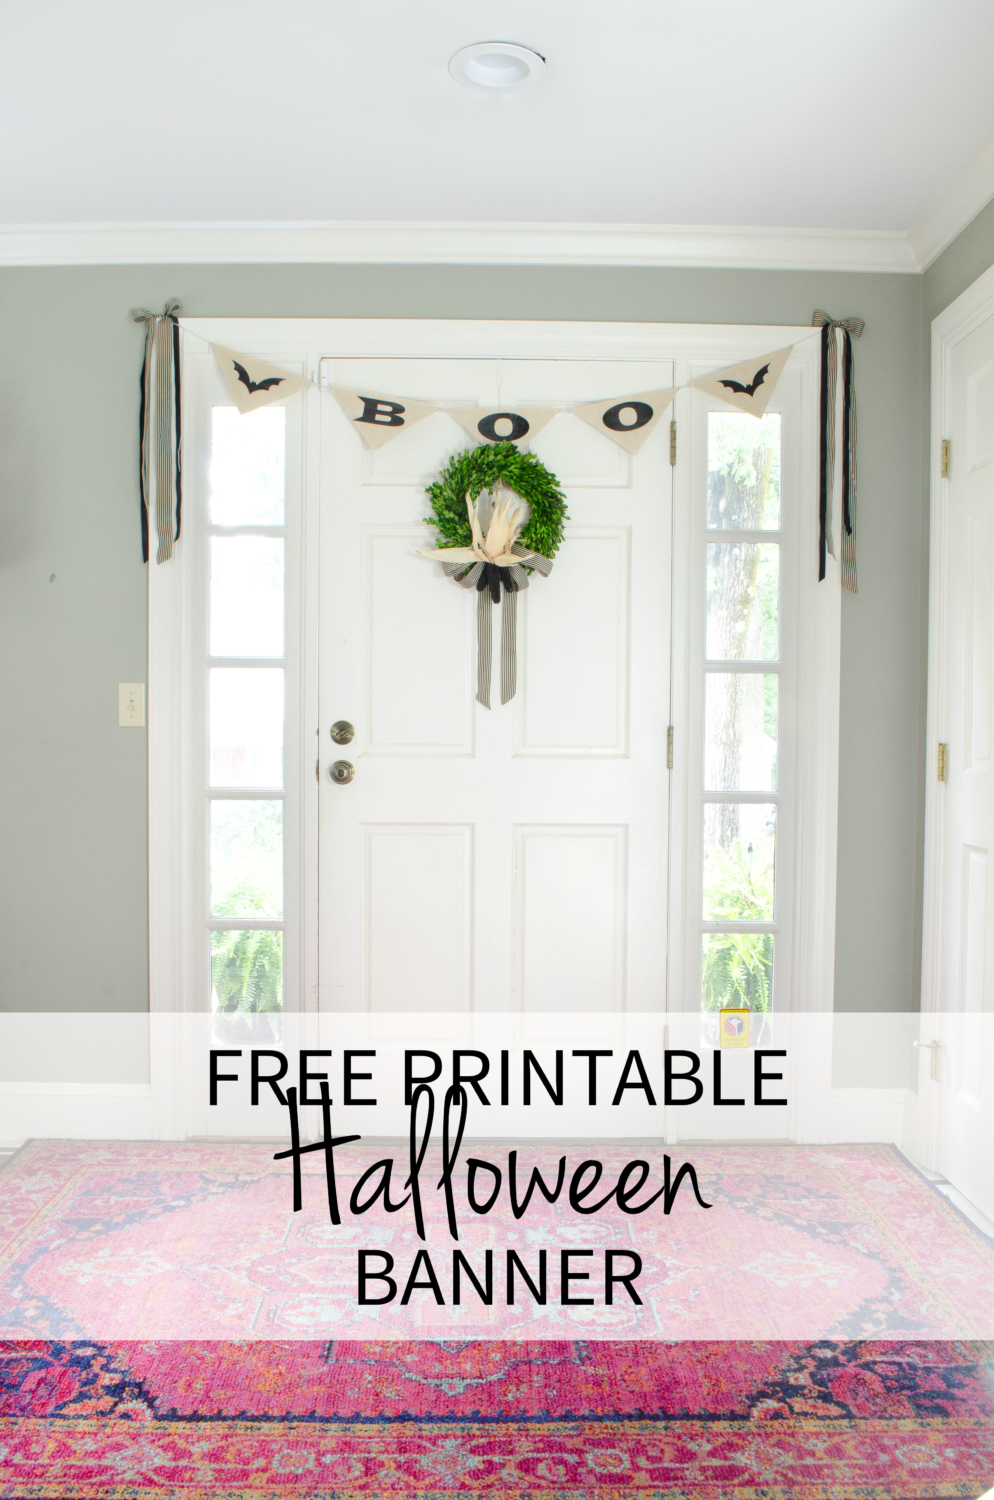 A simple Halloween banner you can print out at home for free - can't beat free Halloween decorations!